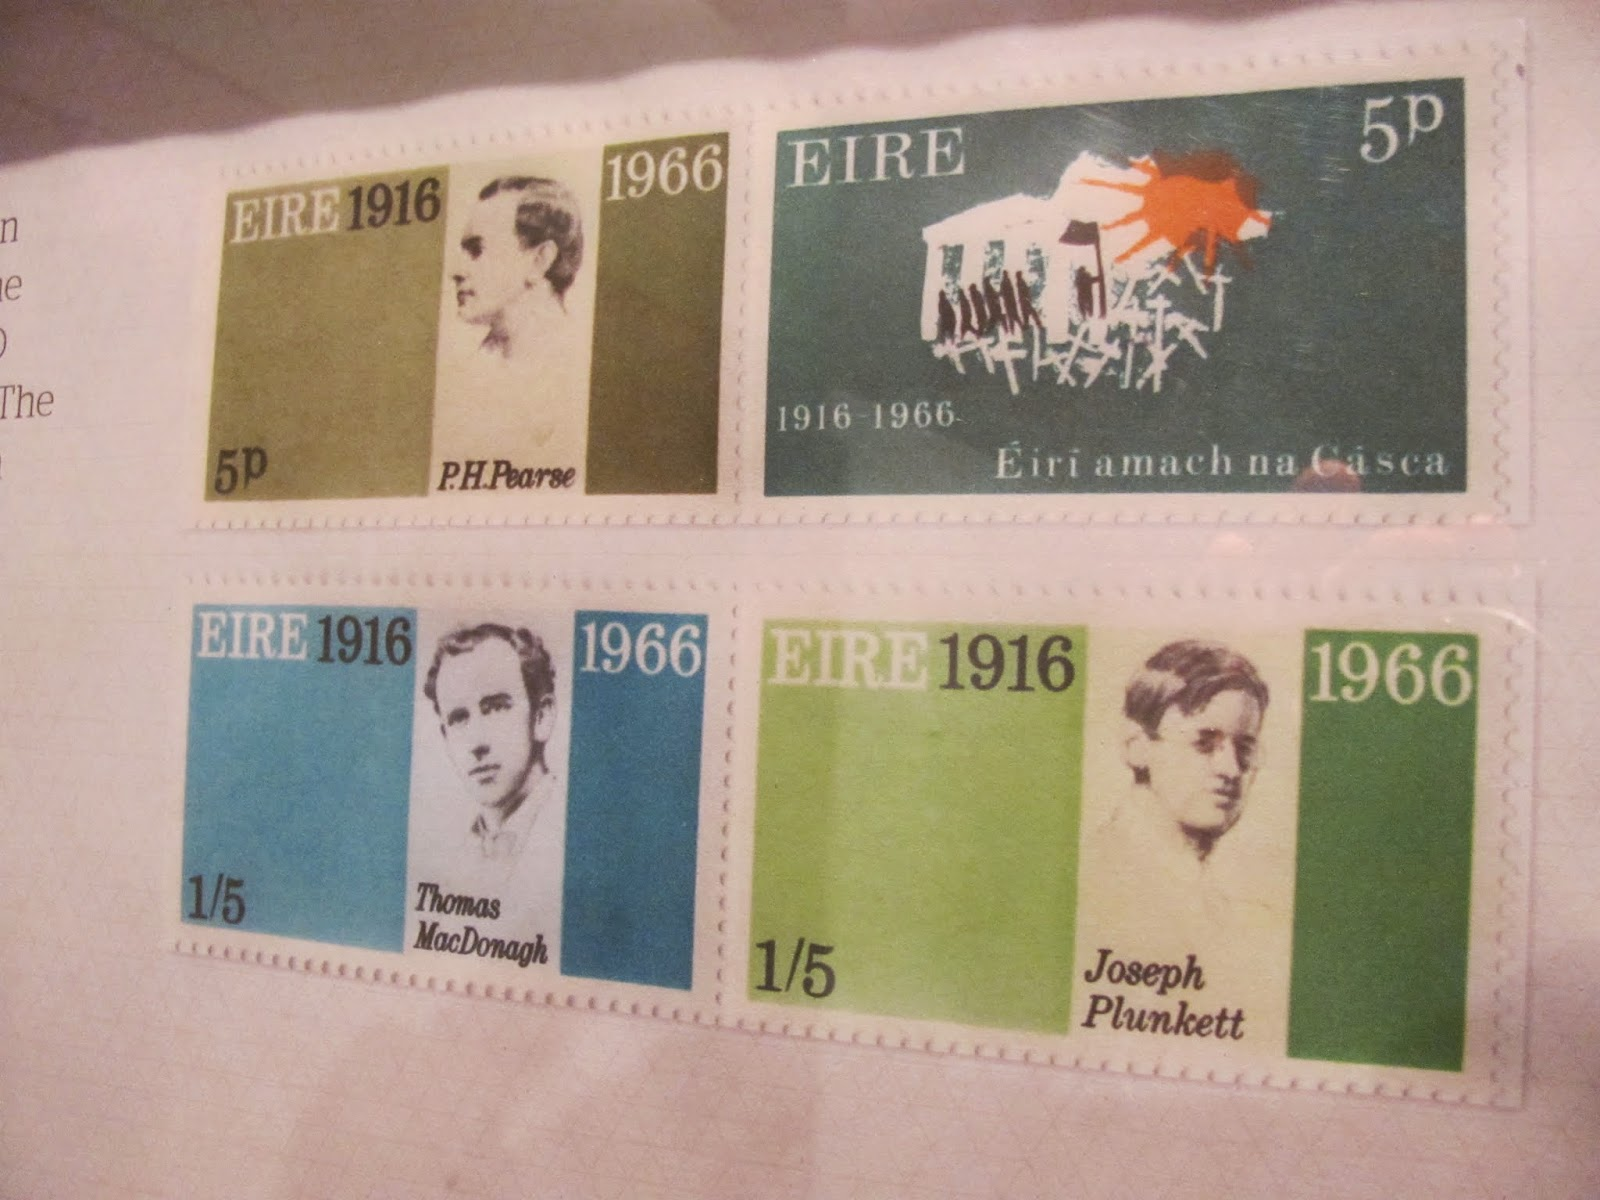 Ireland's 1916 Easter Rising 50-Year Anniversary Stamp Design